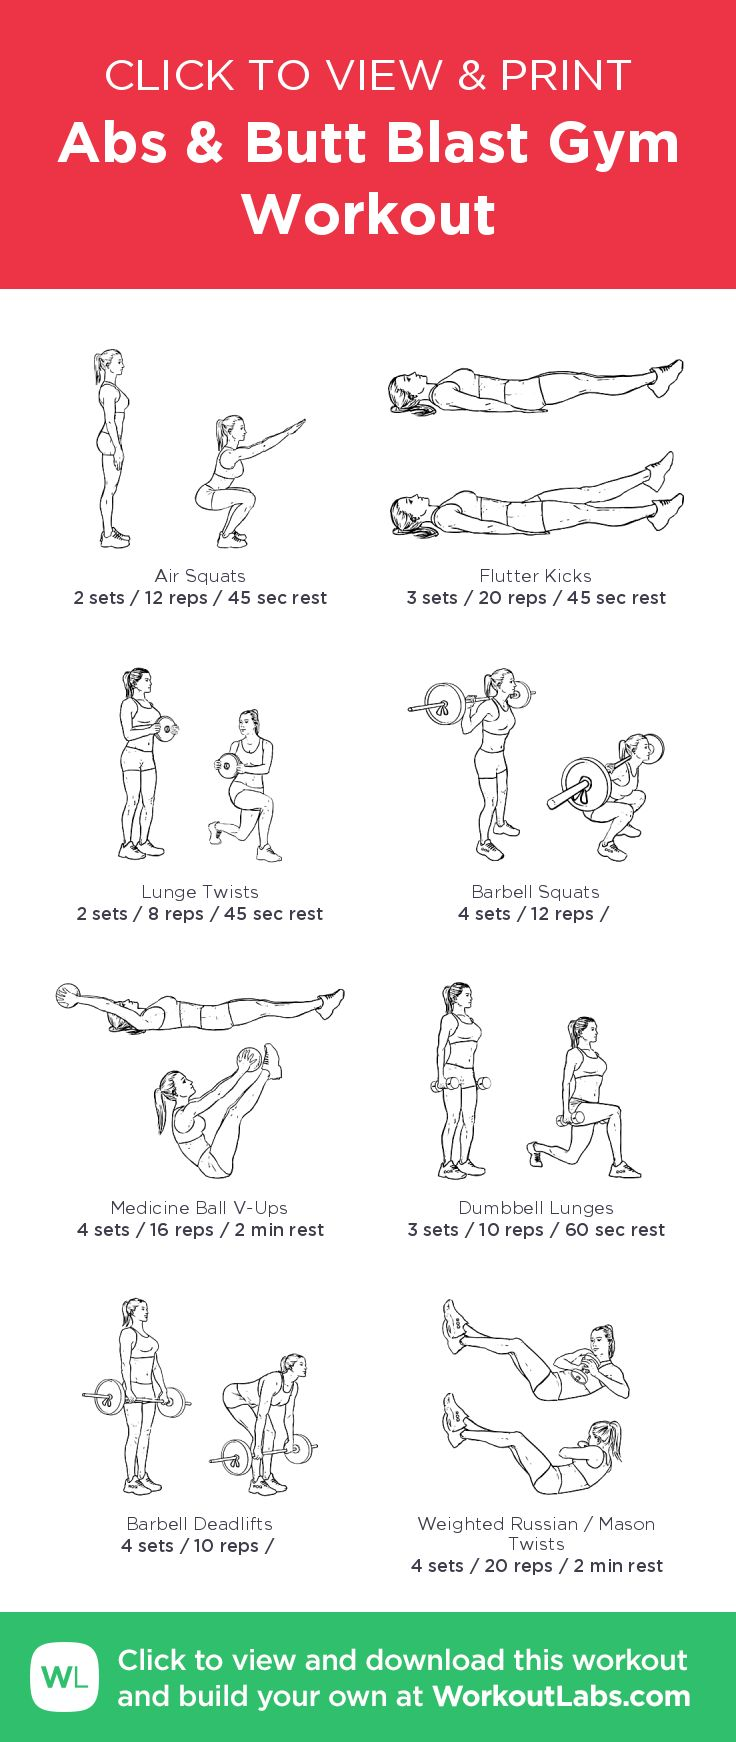 Abs & Butt Blast Gym Workout –illustrated exercise plan created at WorkoutLabs.com/Fit • Click for a printable PDF and to build your own #customworkout